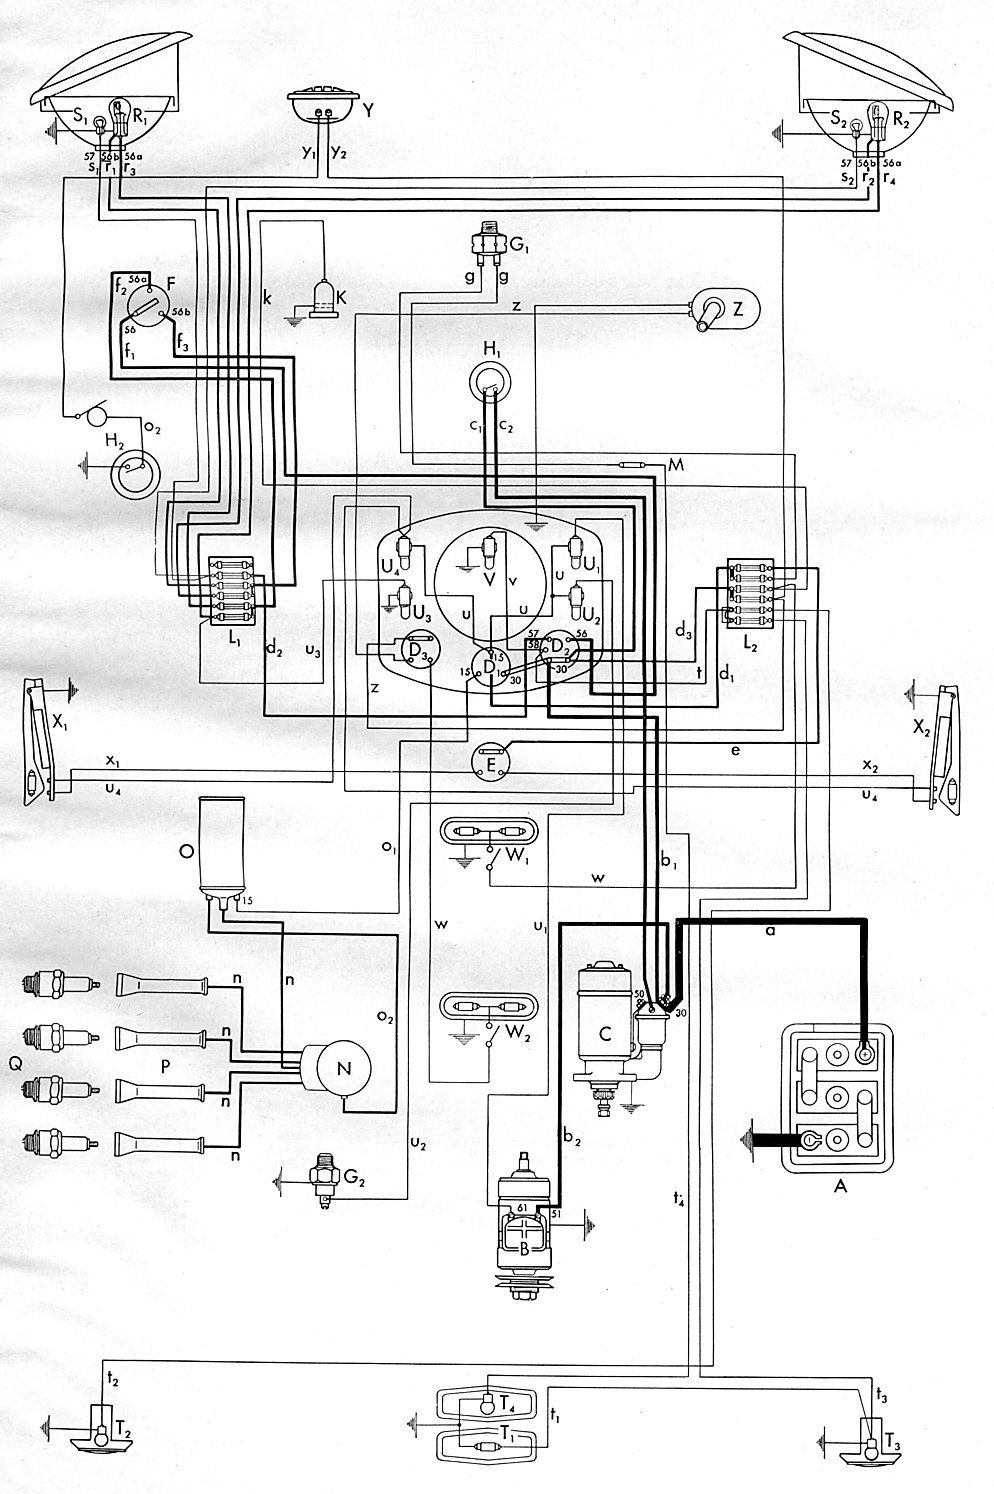 Thesambacom Type 2 Wiring Diagrams  Thesamba Type 1 Wiring